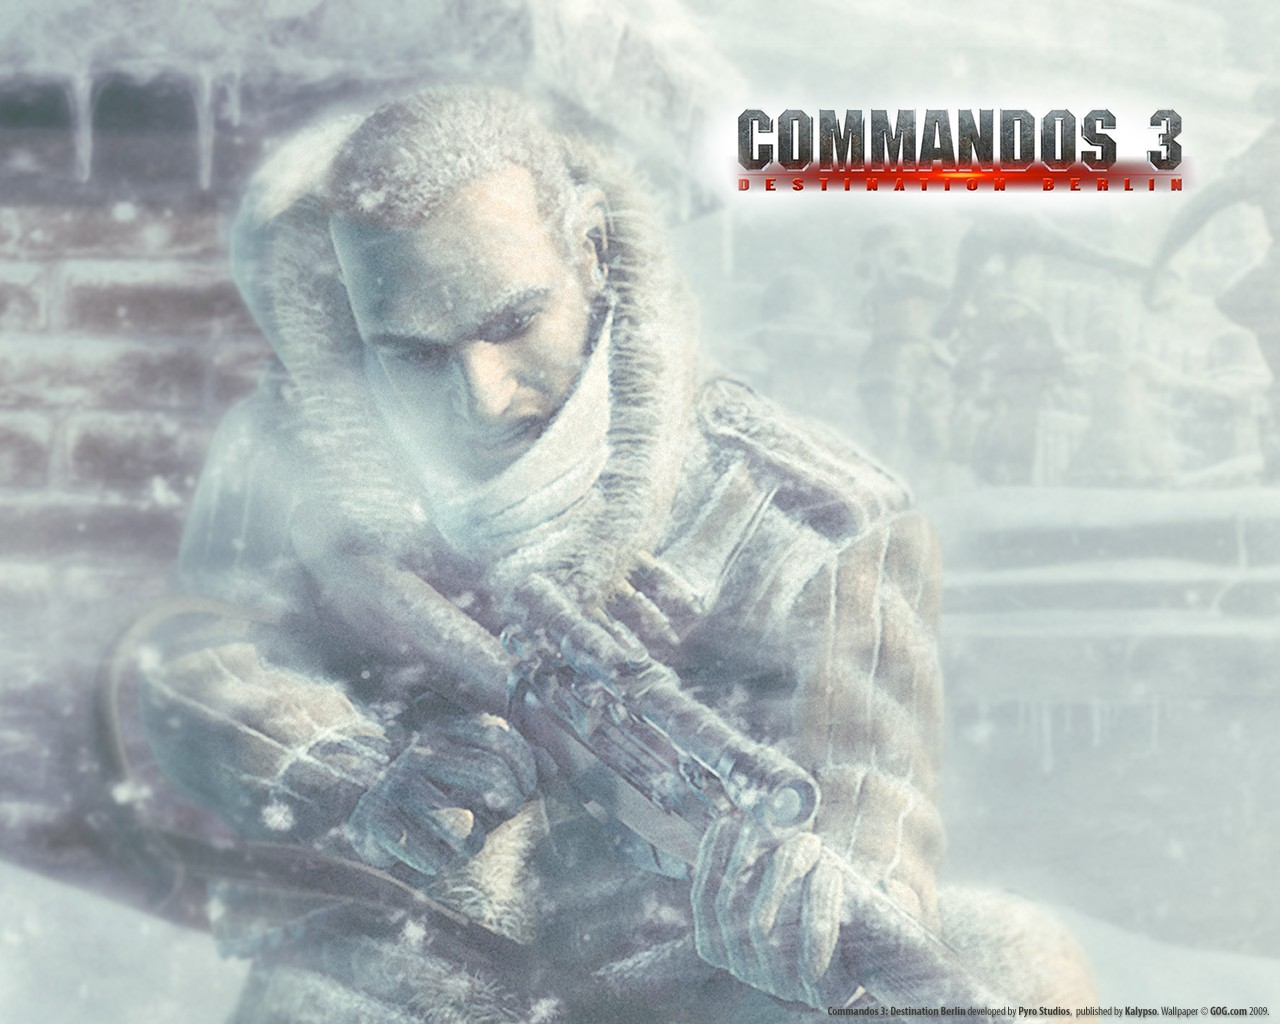 Free Commandos 3 Destination Berlin